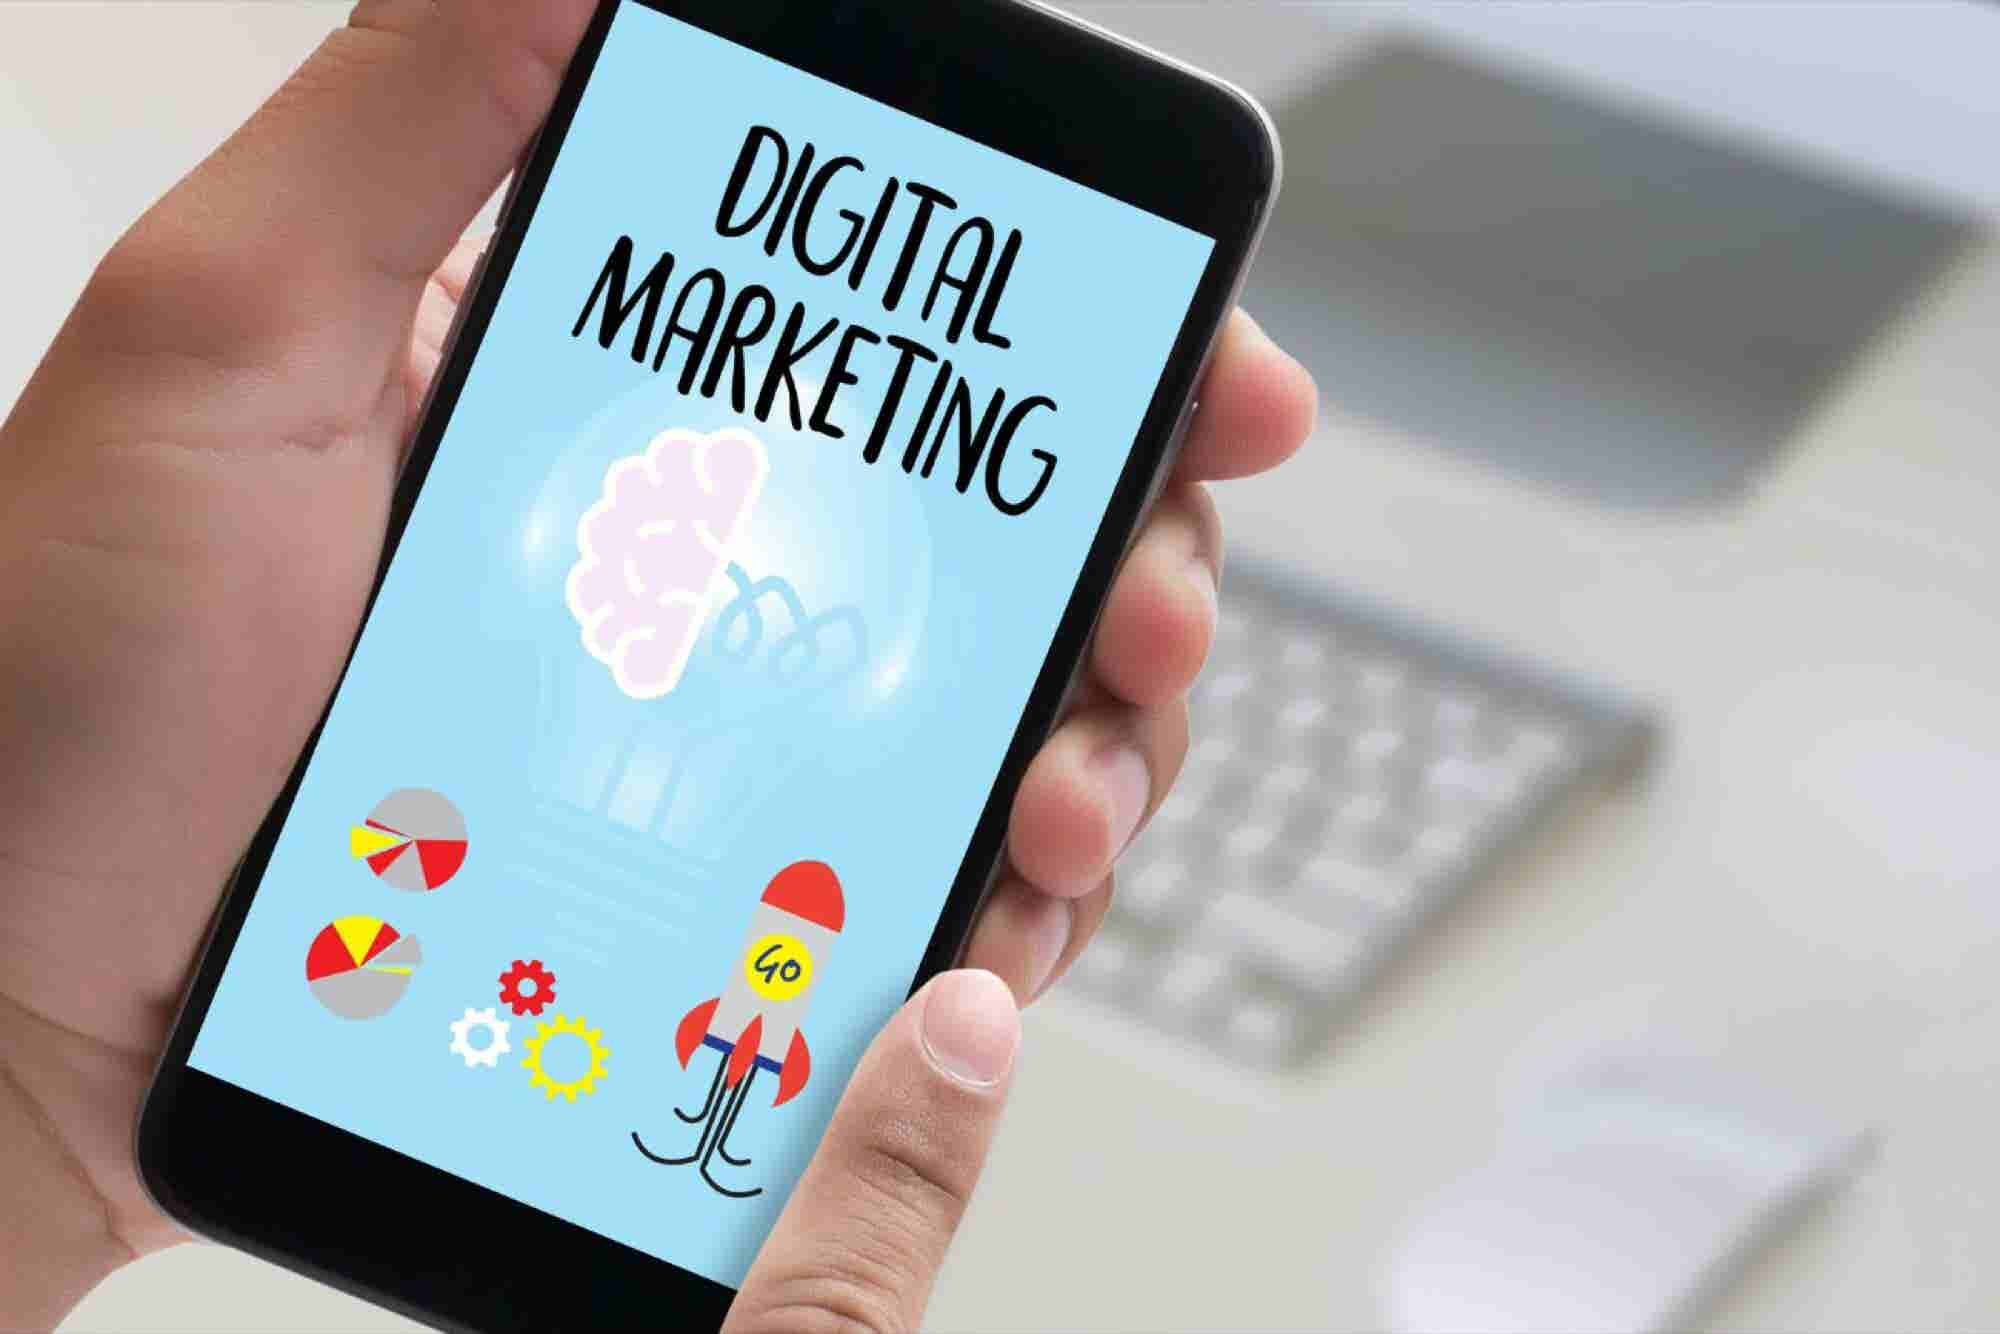 Podcast: 5 errores del marketing digital que crees no estar cometiendo, ¡pero sí!